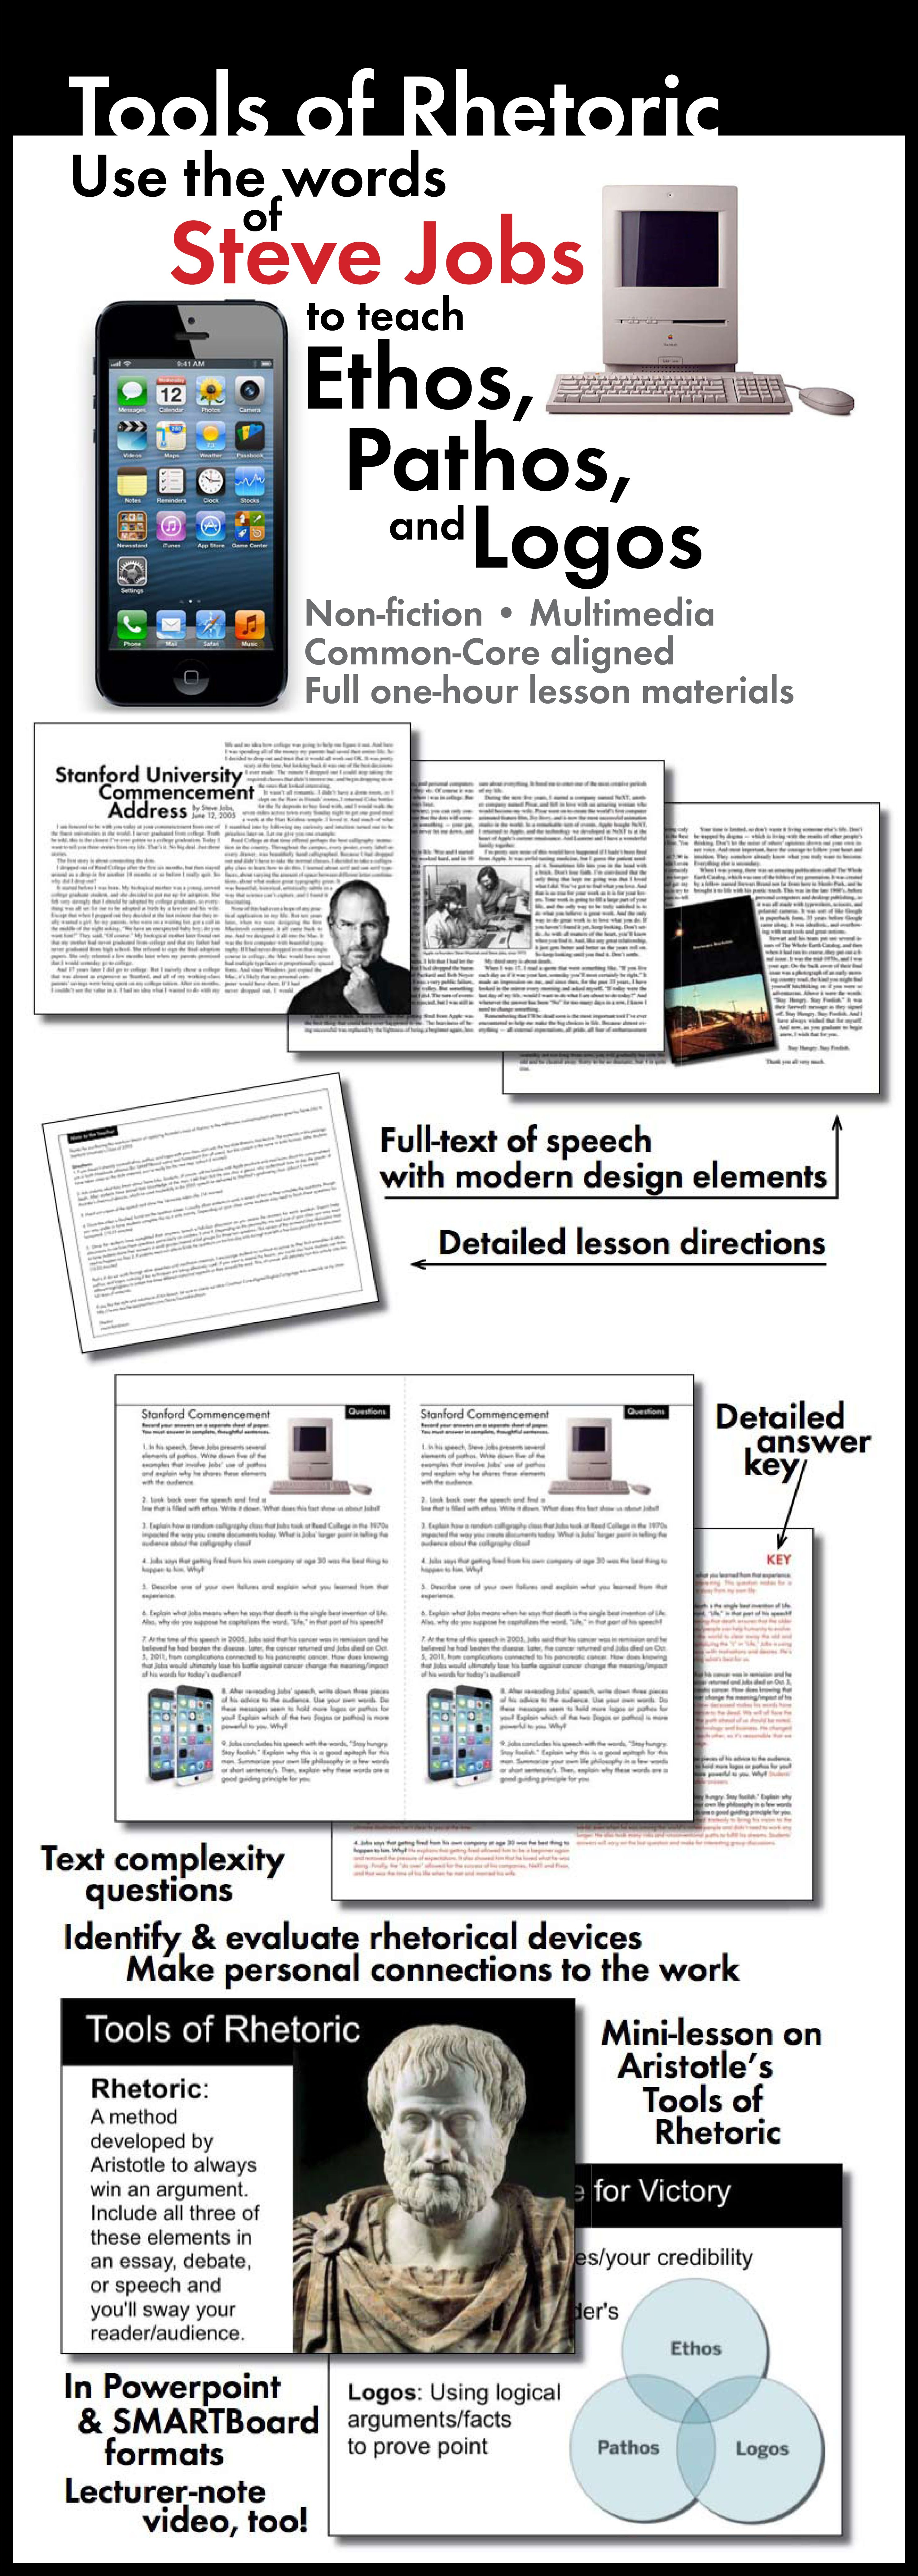 best ideas about steve jobs stanford speech 17 best ideas about steve jobs stanford speech steve jobs speech steve jobs graduation speech and steve jobs college